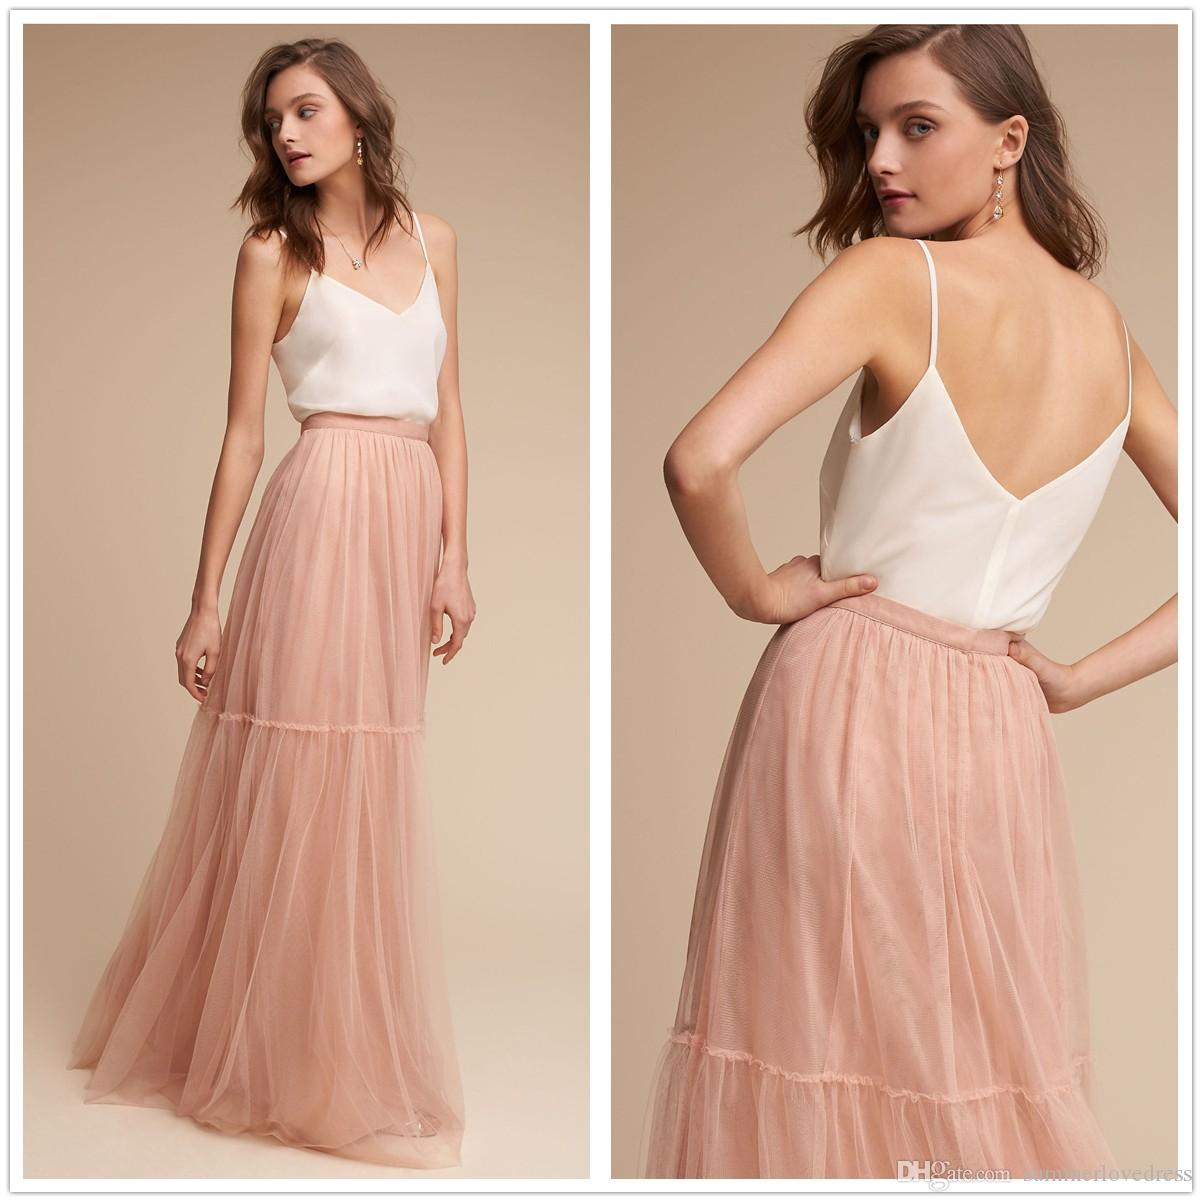 eb3e09a82 2017 Elegant Boho Two Pieces Tulle Long Bridesmaid Dresses Spaghetti Straps  Satin Top Floor Length Evening Party Prom Dresses Canada 2019 From ...